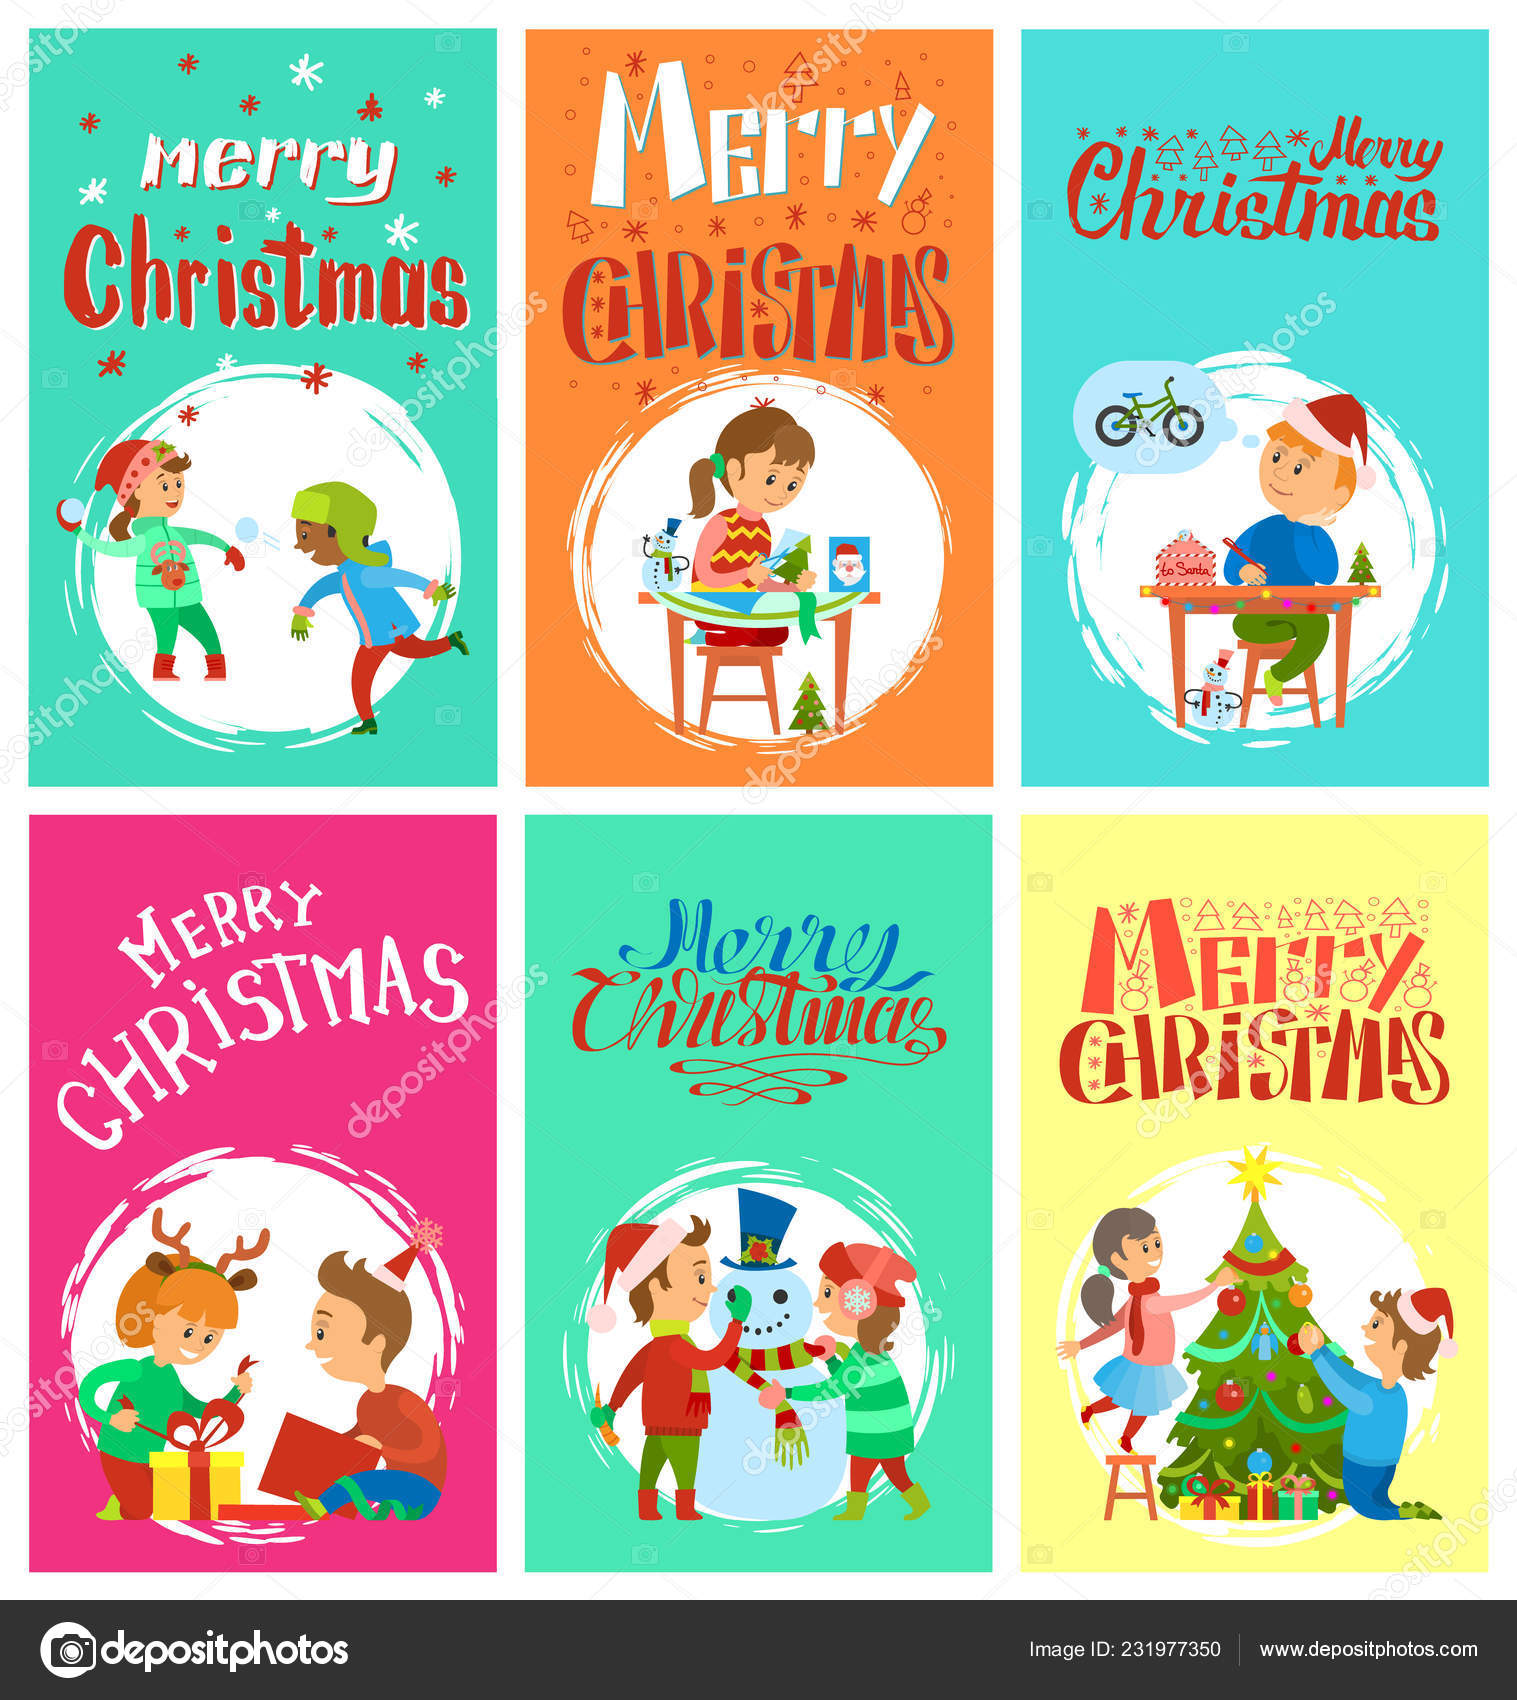 Merry Christmas Writing Clipart.Merry Christmas Wintertime Activities Kids Playing Stock